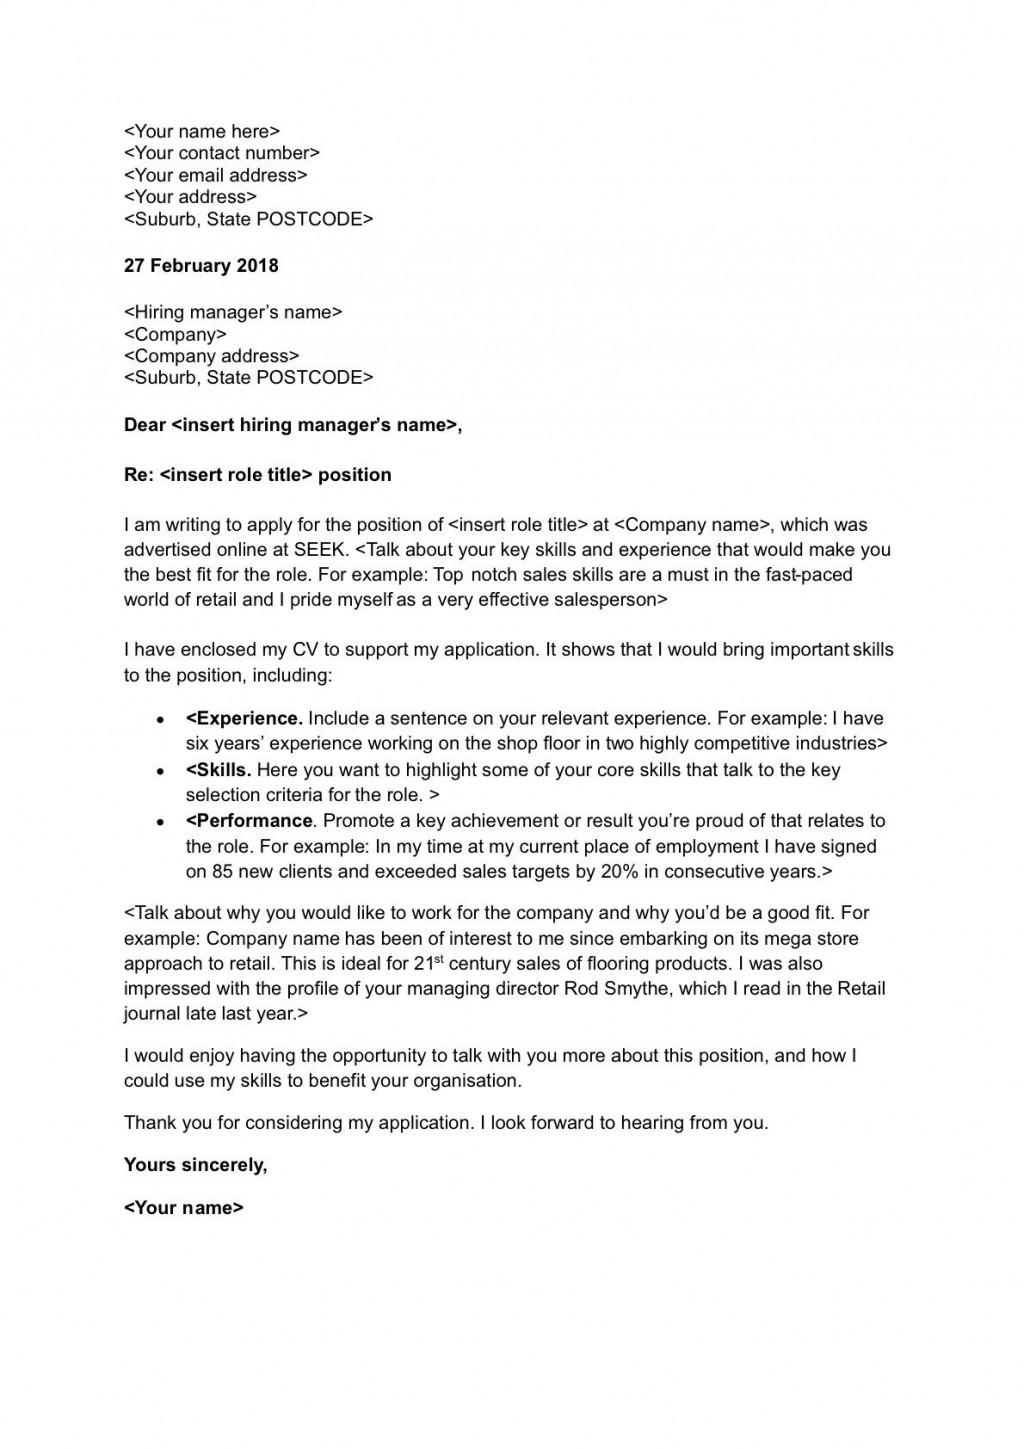 008 Astounding Basic Covering Letter Template Design  Simple Application Word Example Of Job CoverLarge